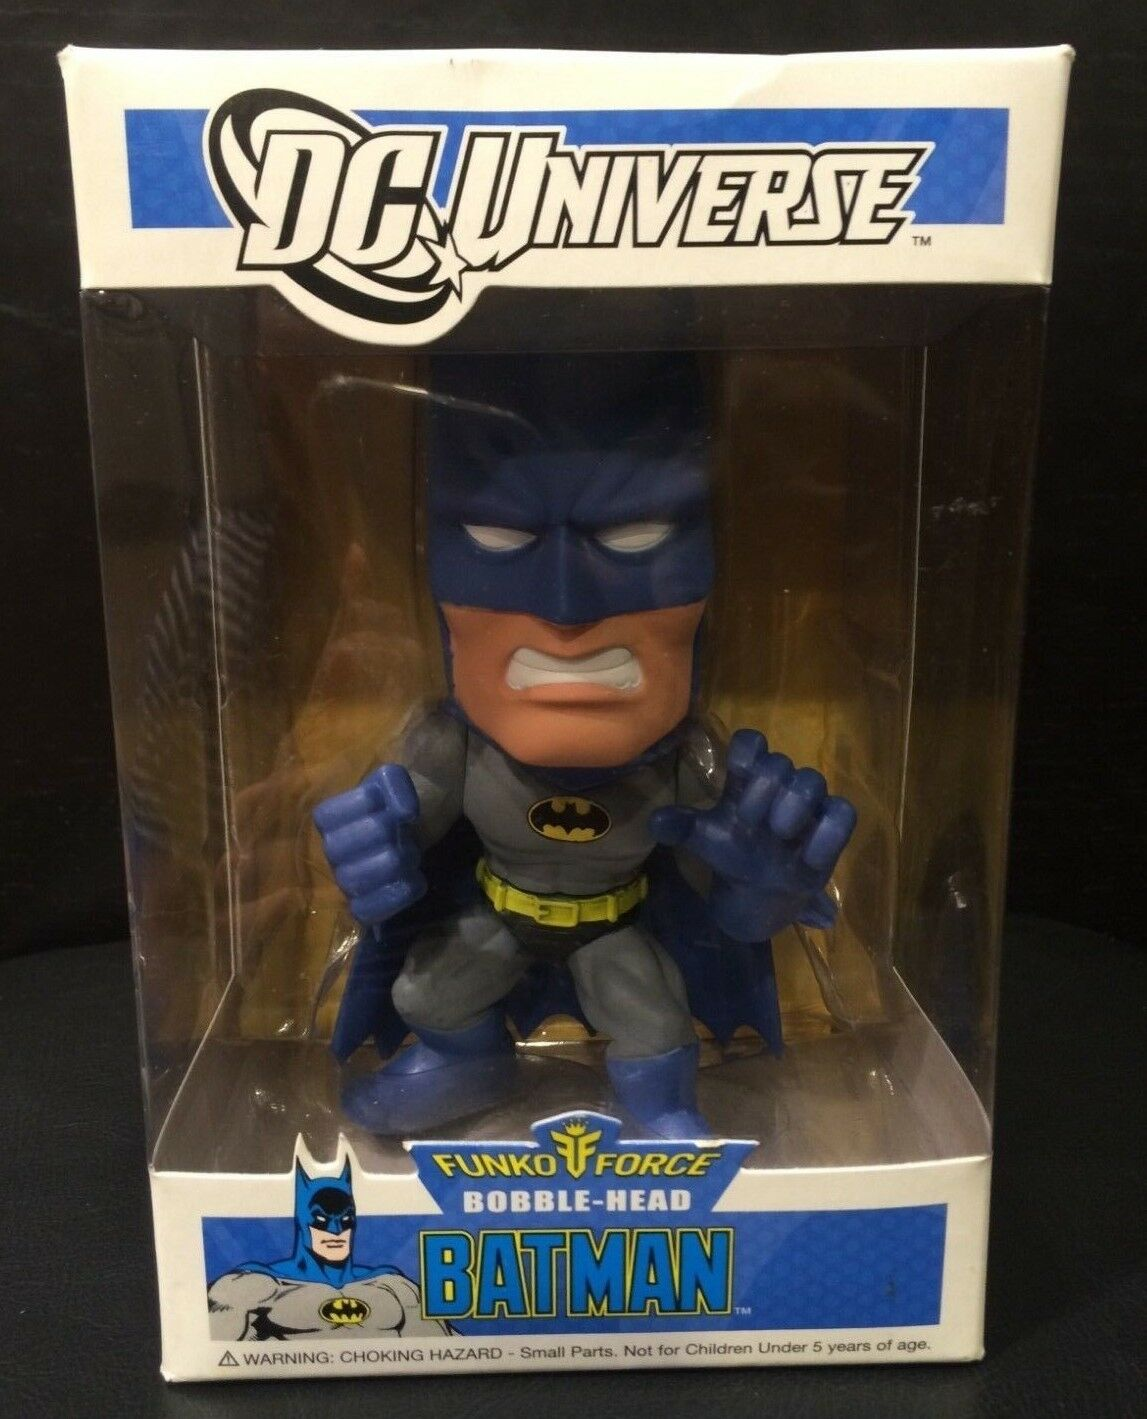 Funko Force DC Universe Batman Bobble-Head Vaulted RetiROT Pop  - VGC